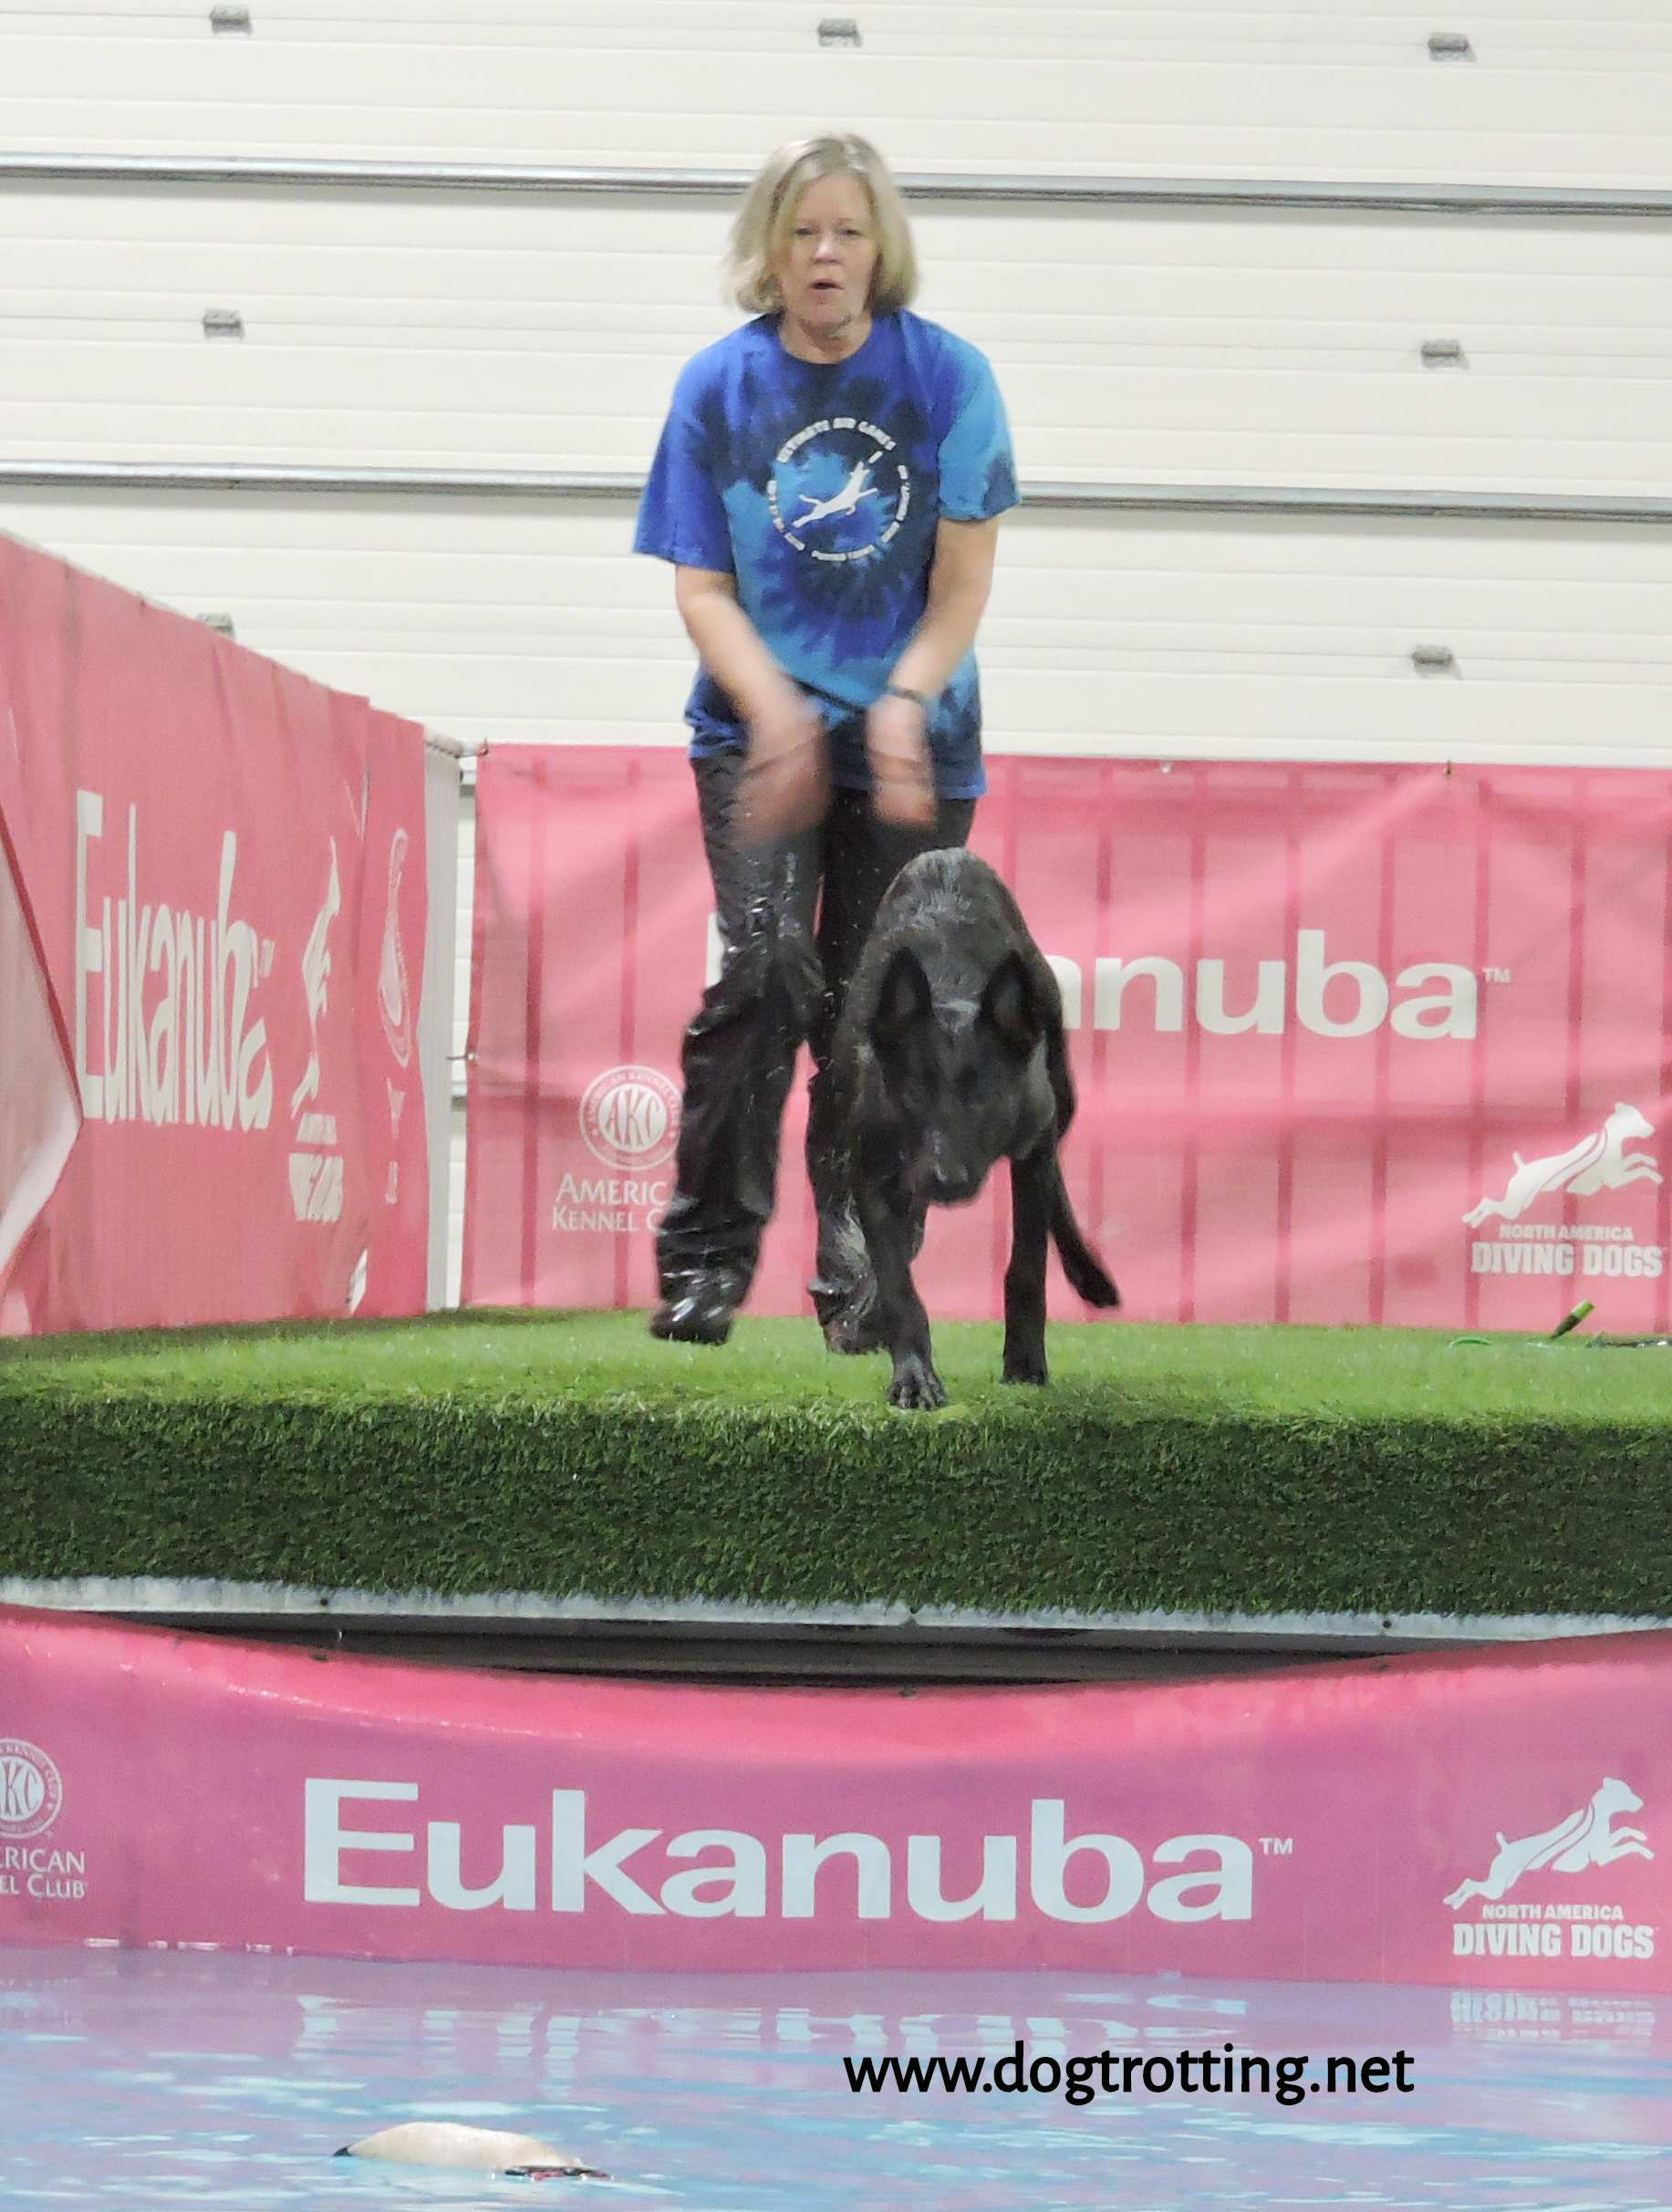 dock diving at The Michigan Winter Dog Classic dog show